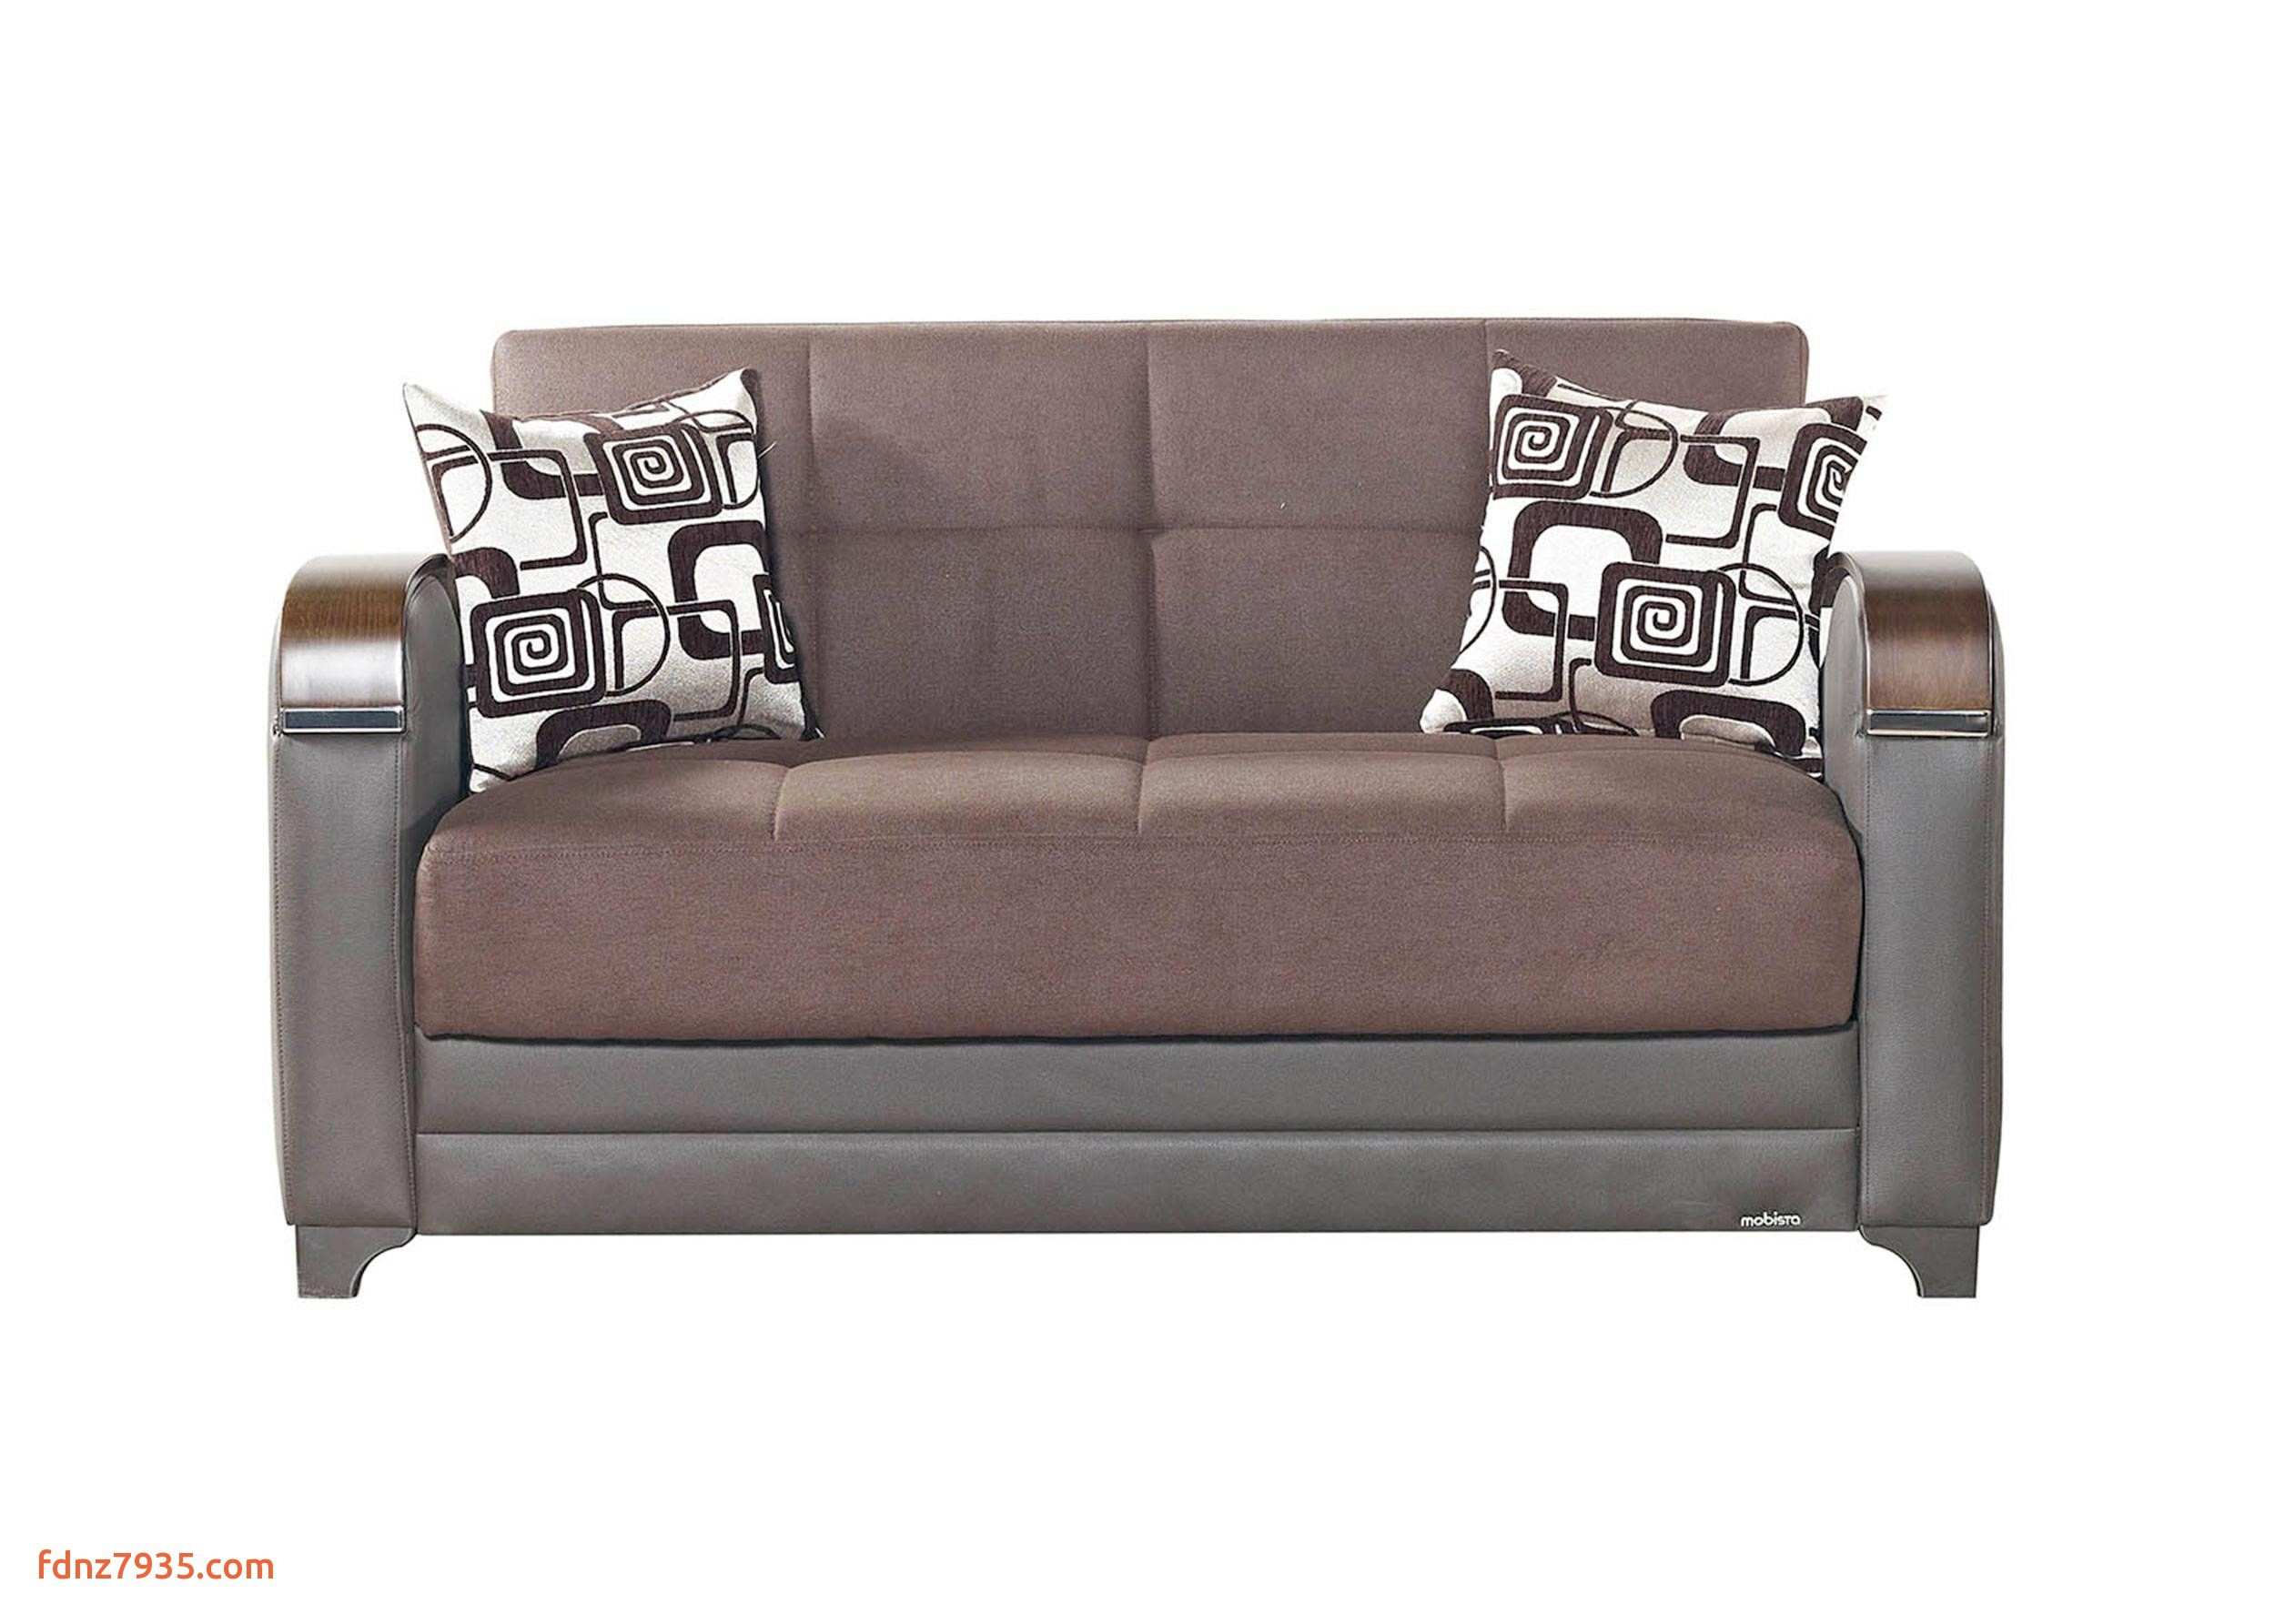 Sectional Patio Furniture Lovely Sleeper Loveseat Inspirational Wicker Outdoor Sofa 0d